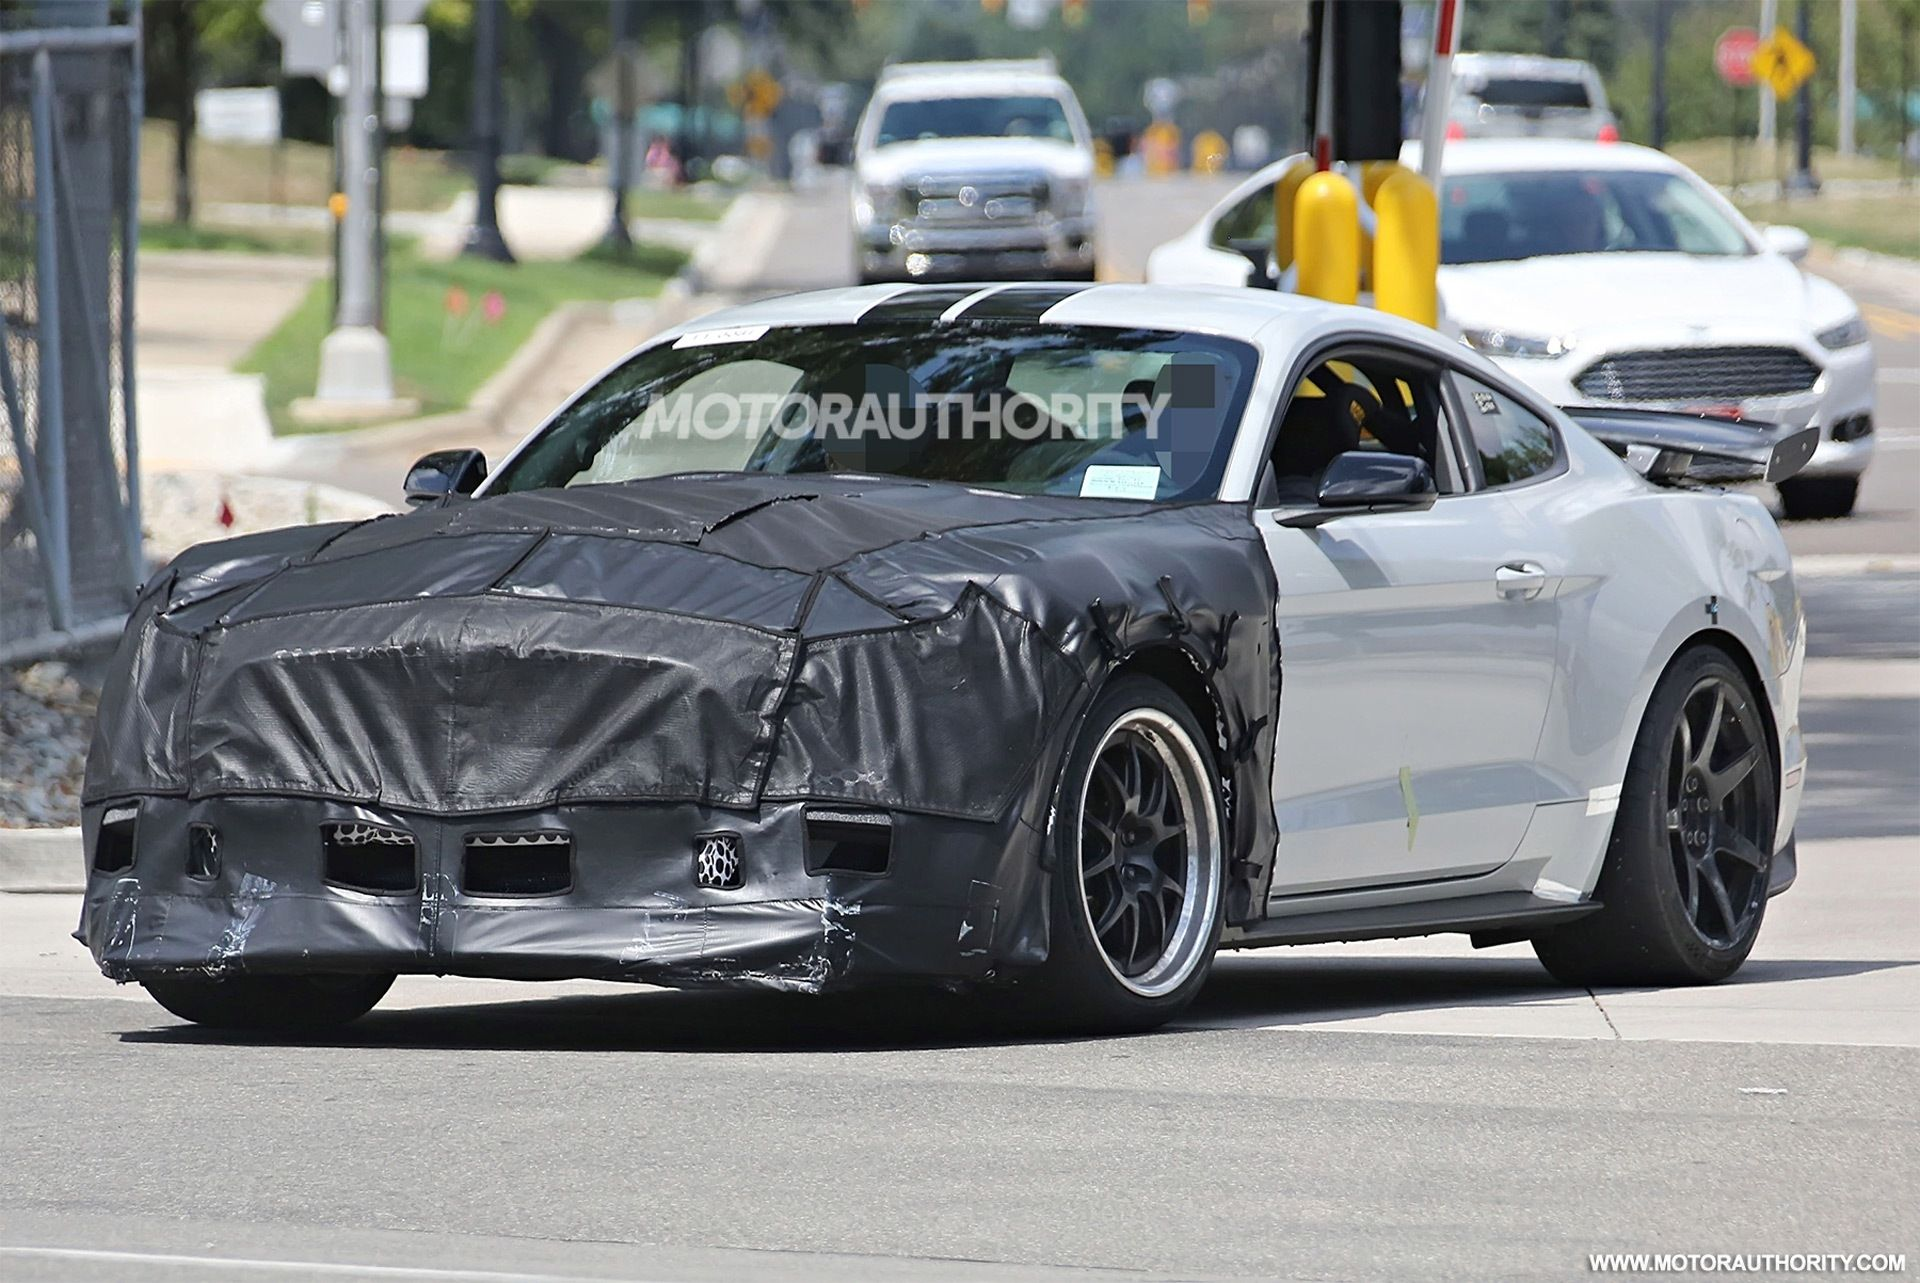 77 All New Spy Shots Ford Mustang Svt Gt 500 New Review